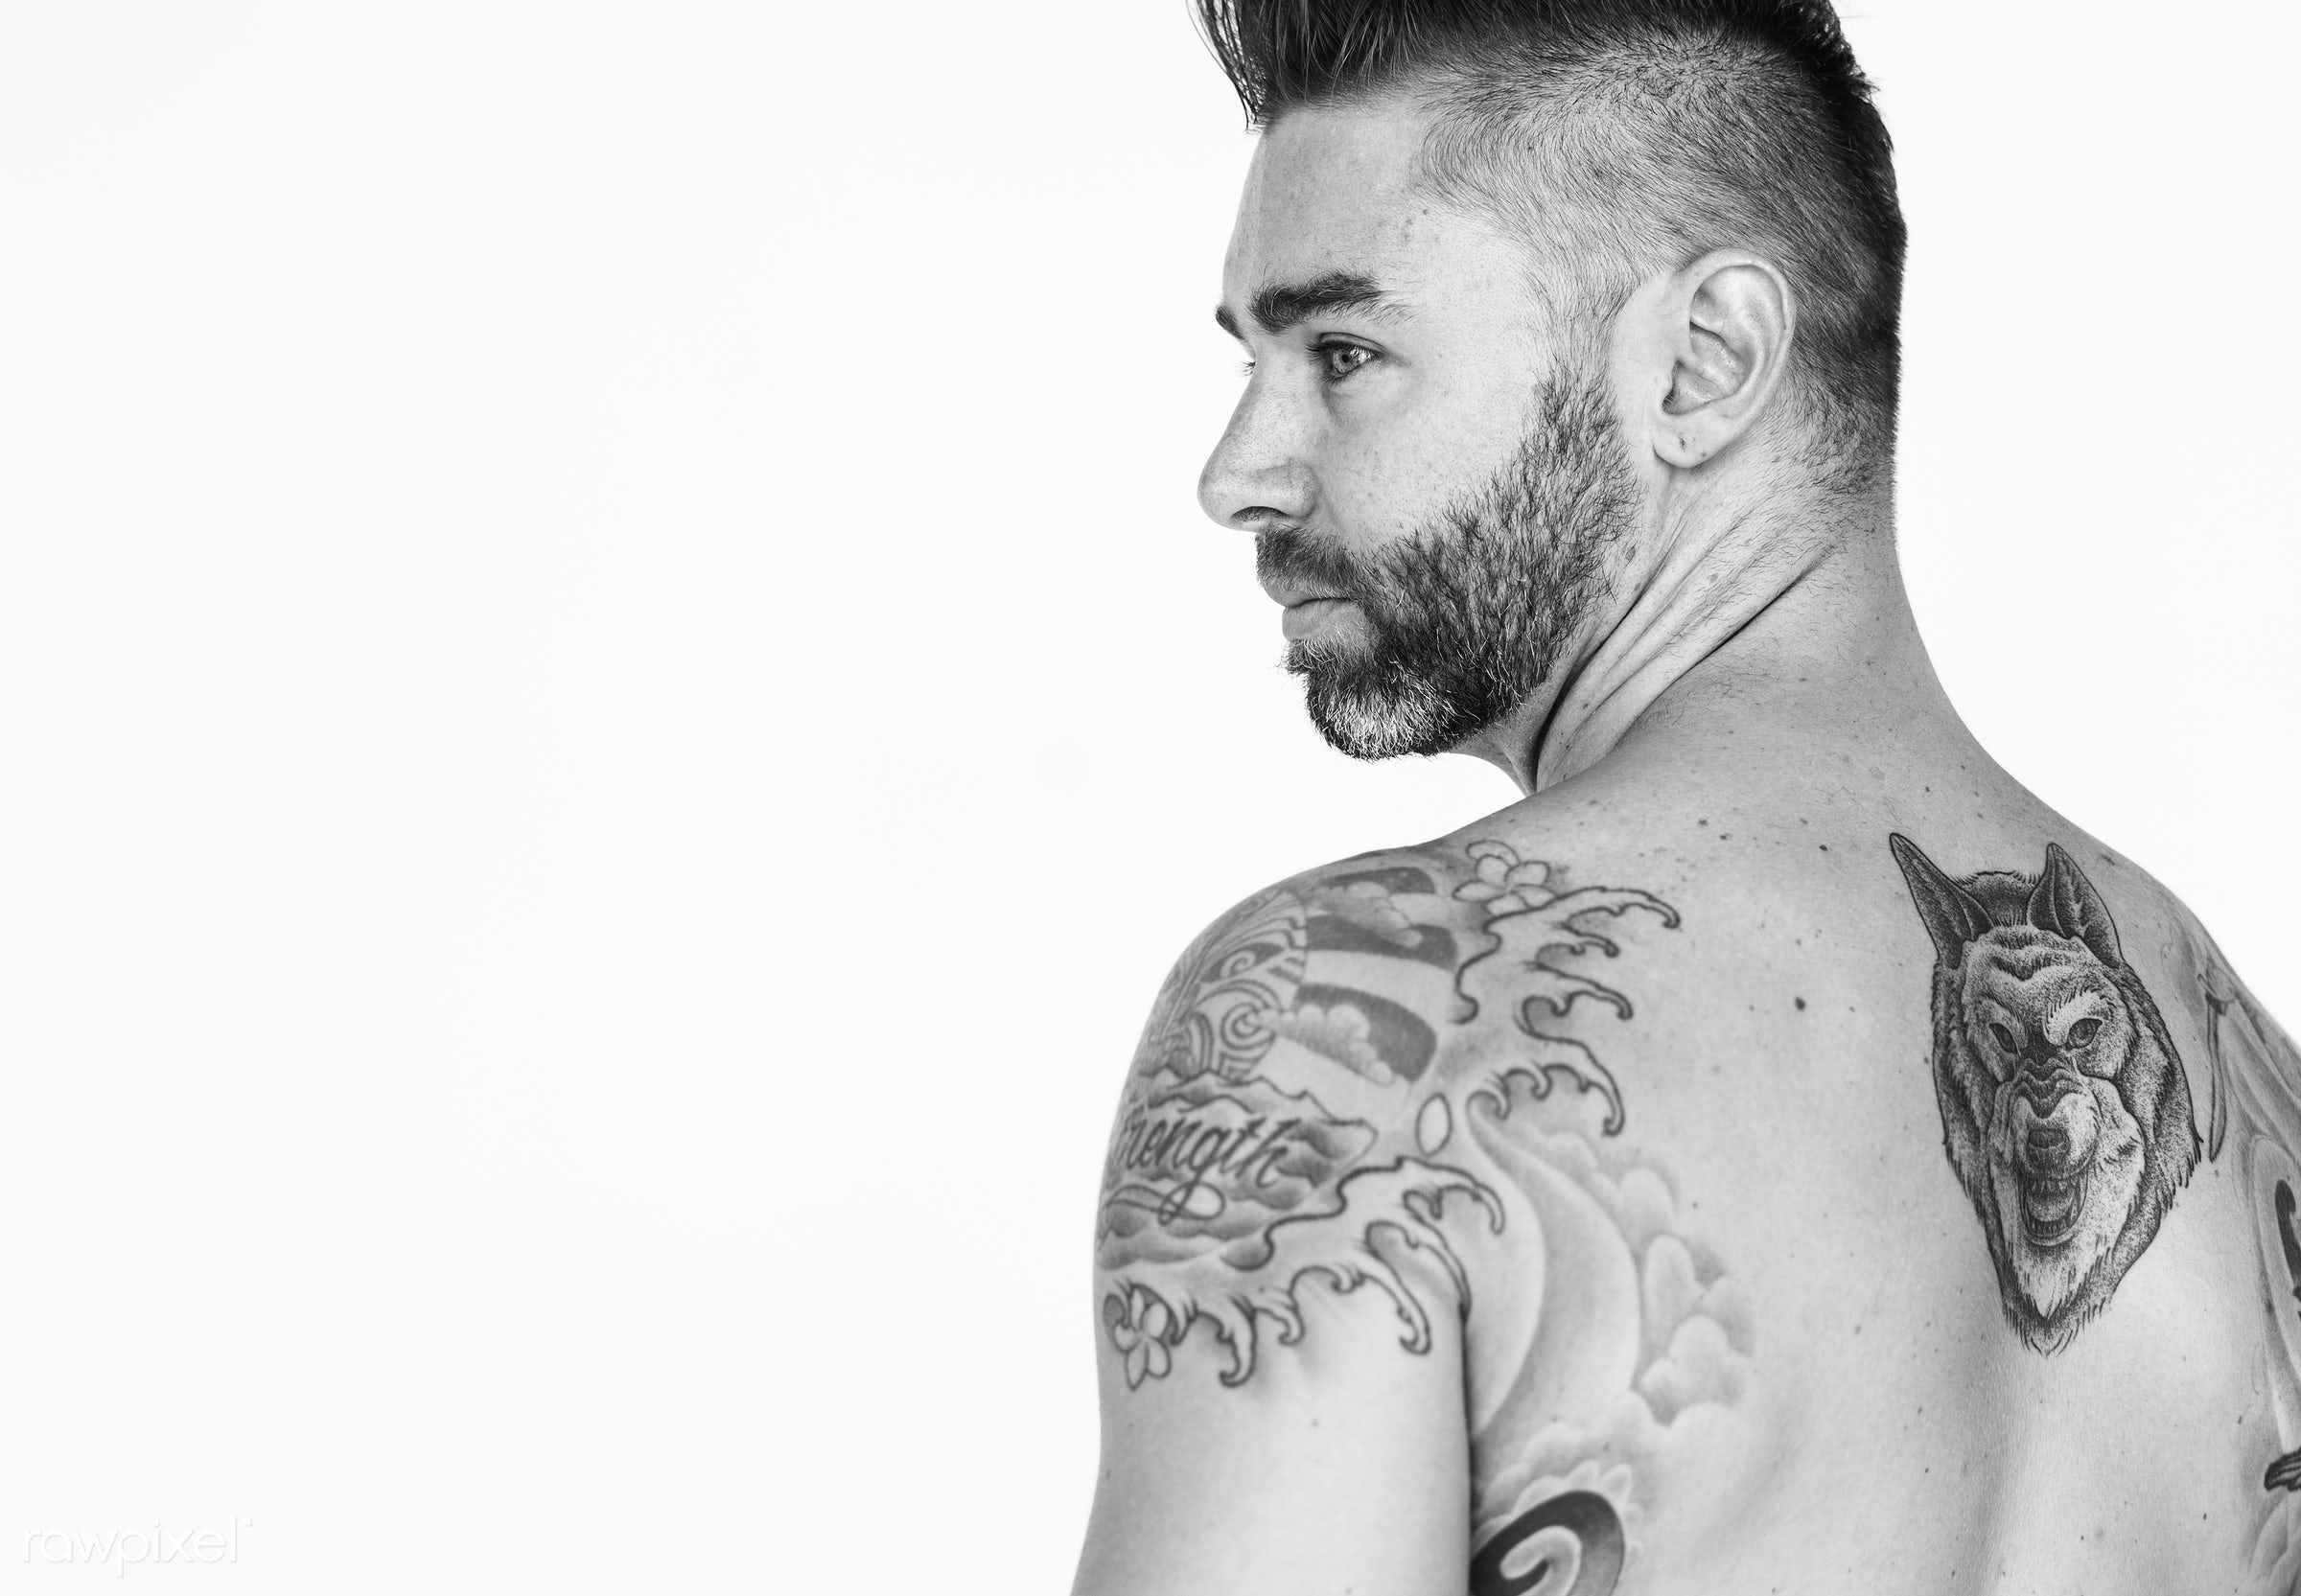 expression, studio, body, model, person, isolated on white, people, race, caucasian, fit, style, lifestyle, casual, tattoo,...